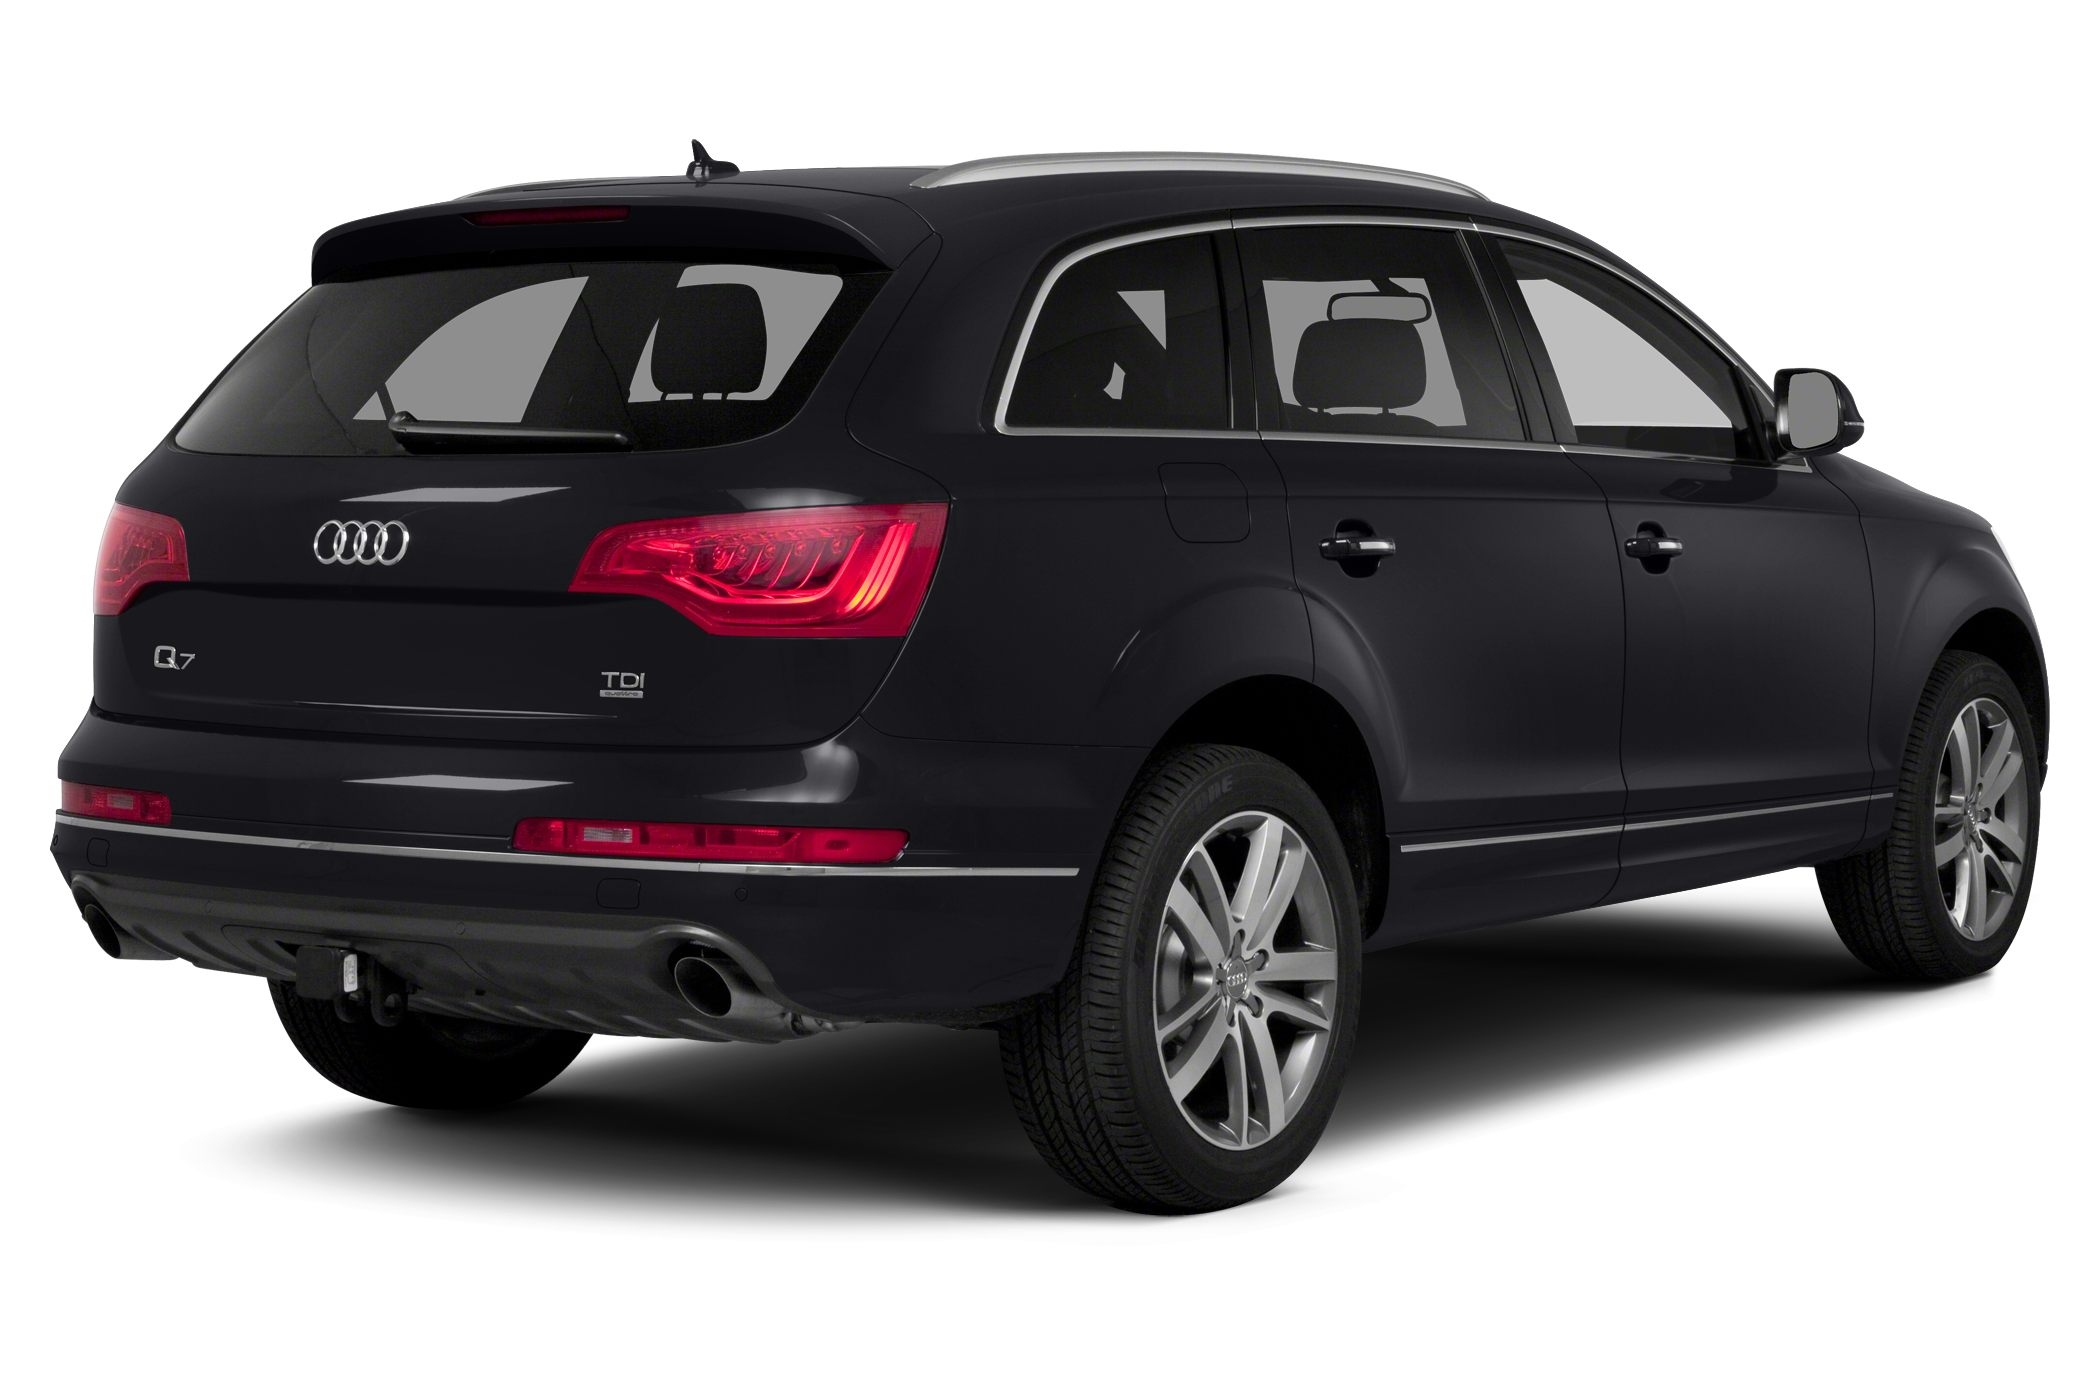 new 2015 audi q7 price photos reviews safety ratings amp features audi q7 invoice price